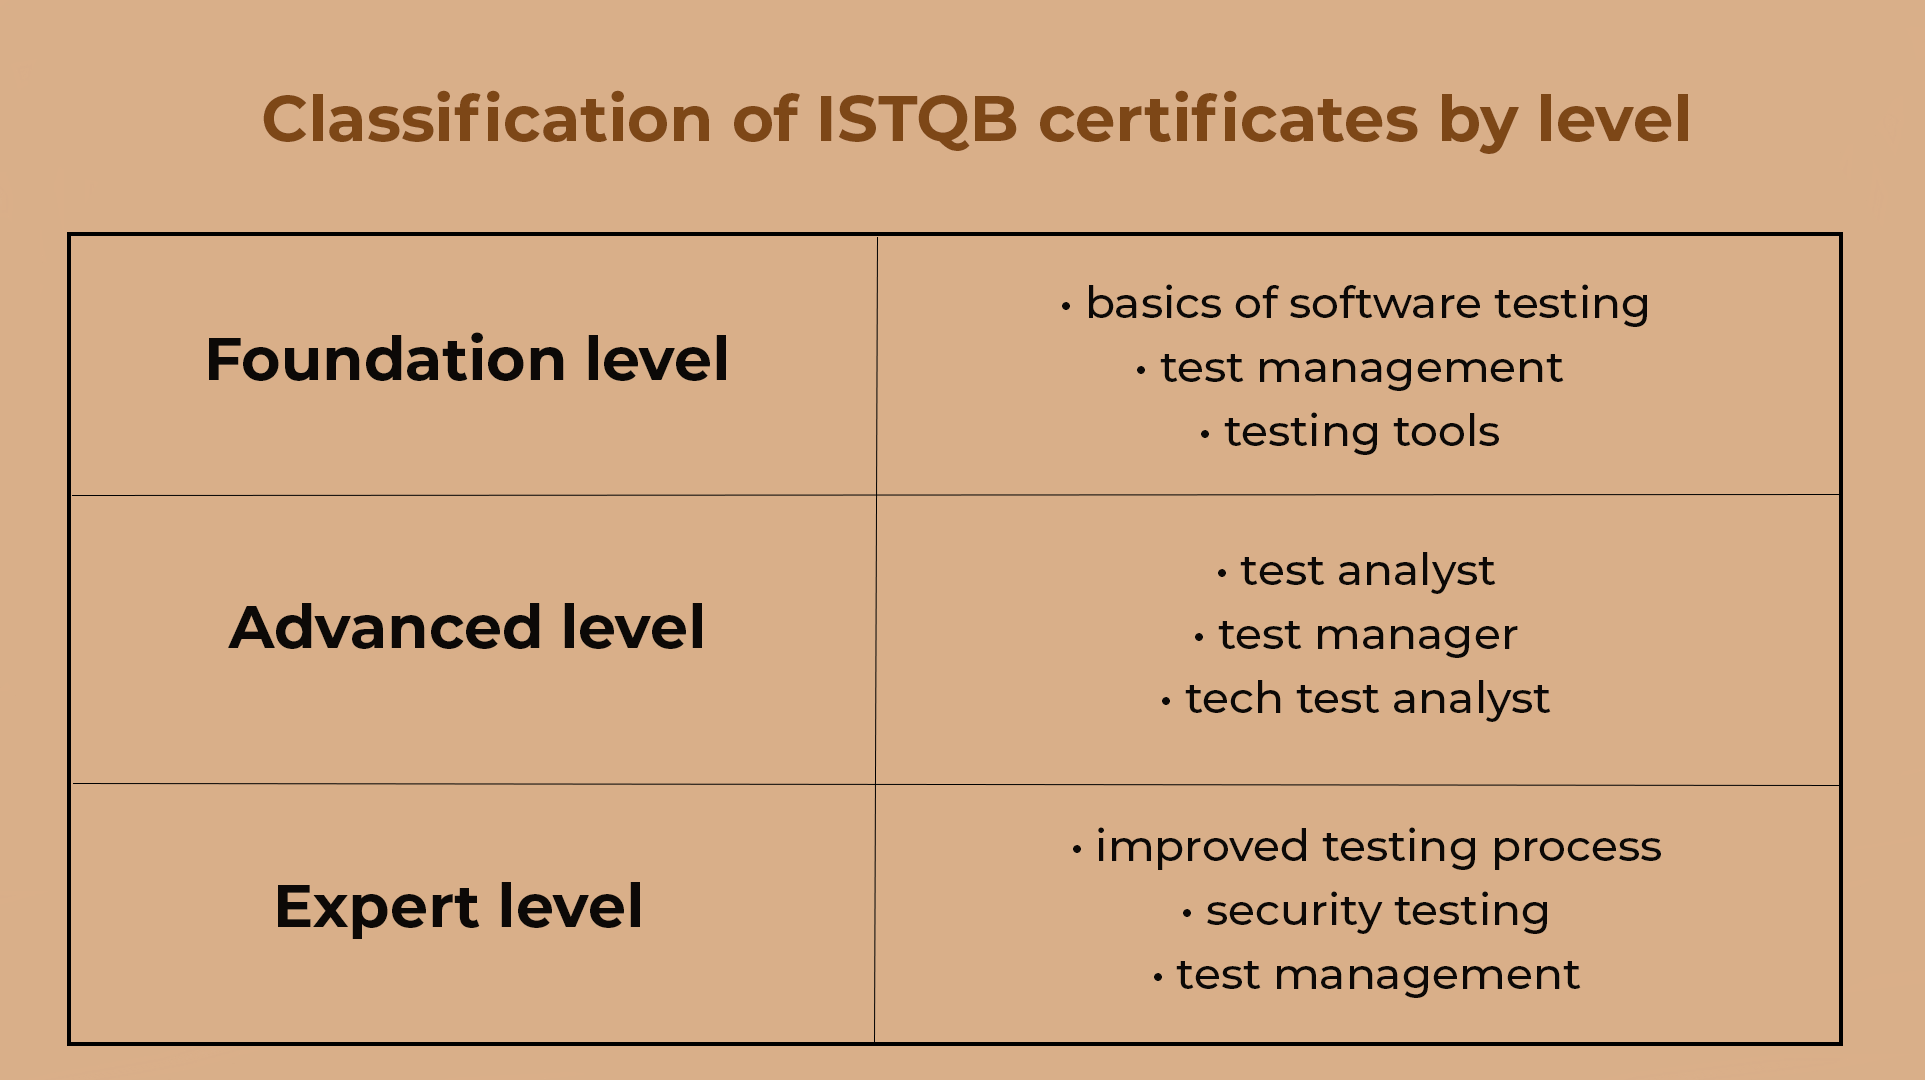 Classification of ISTQB certificates by level